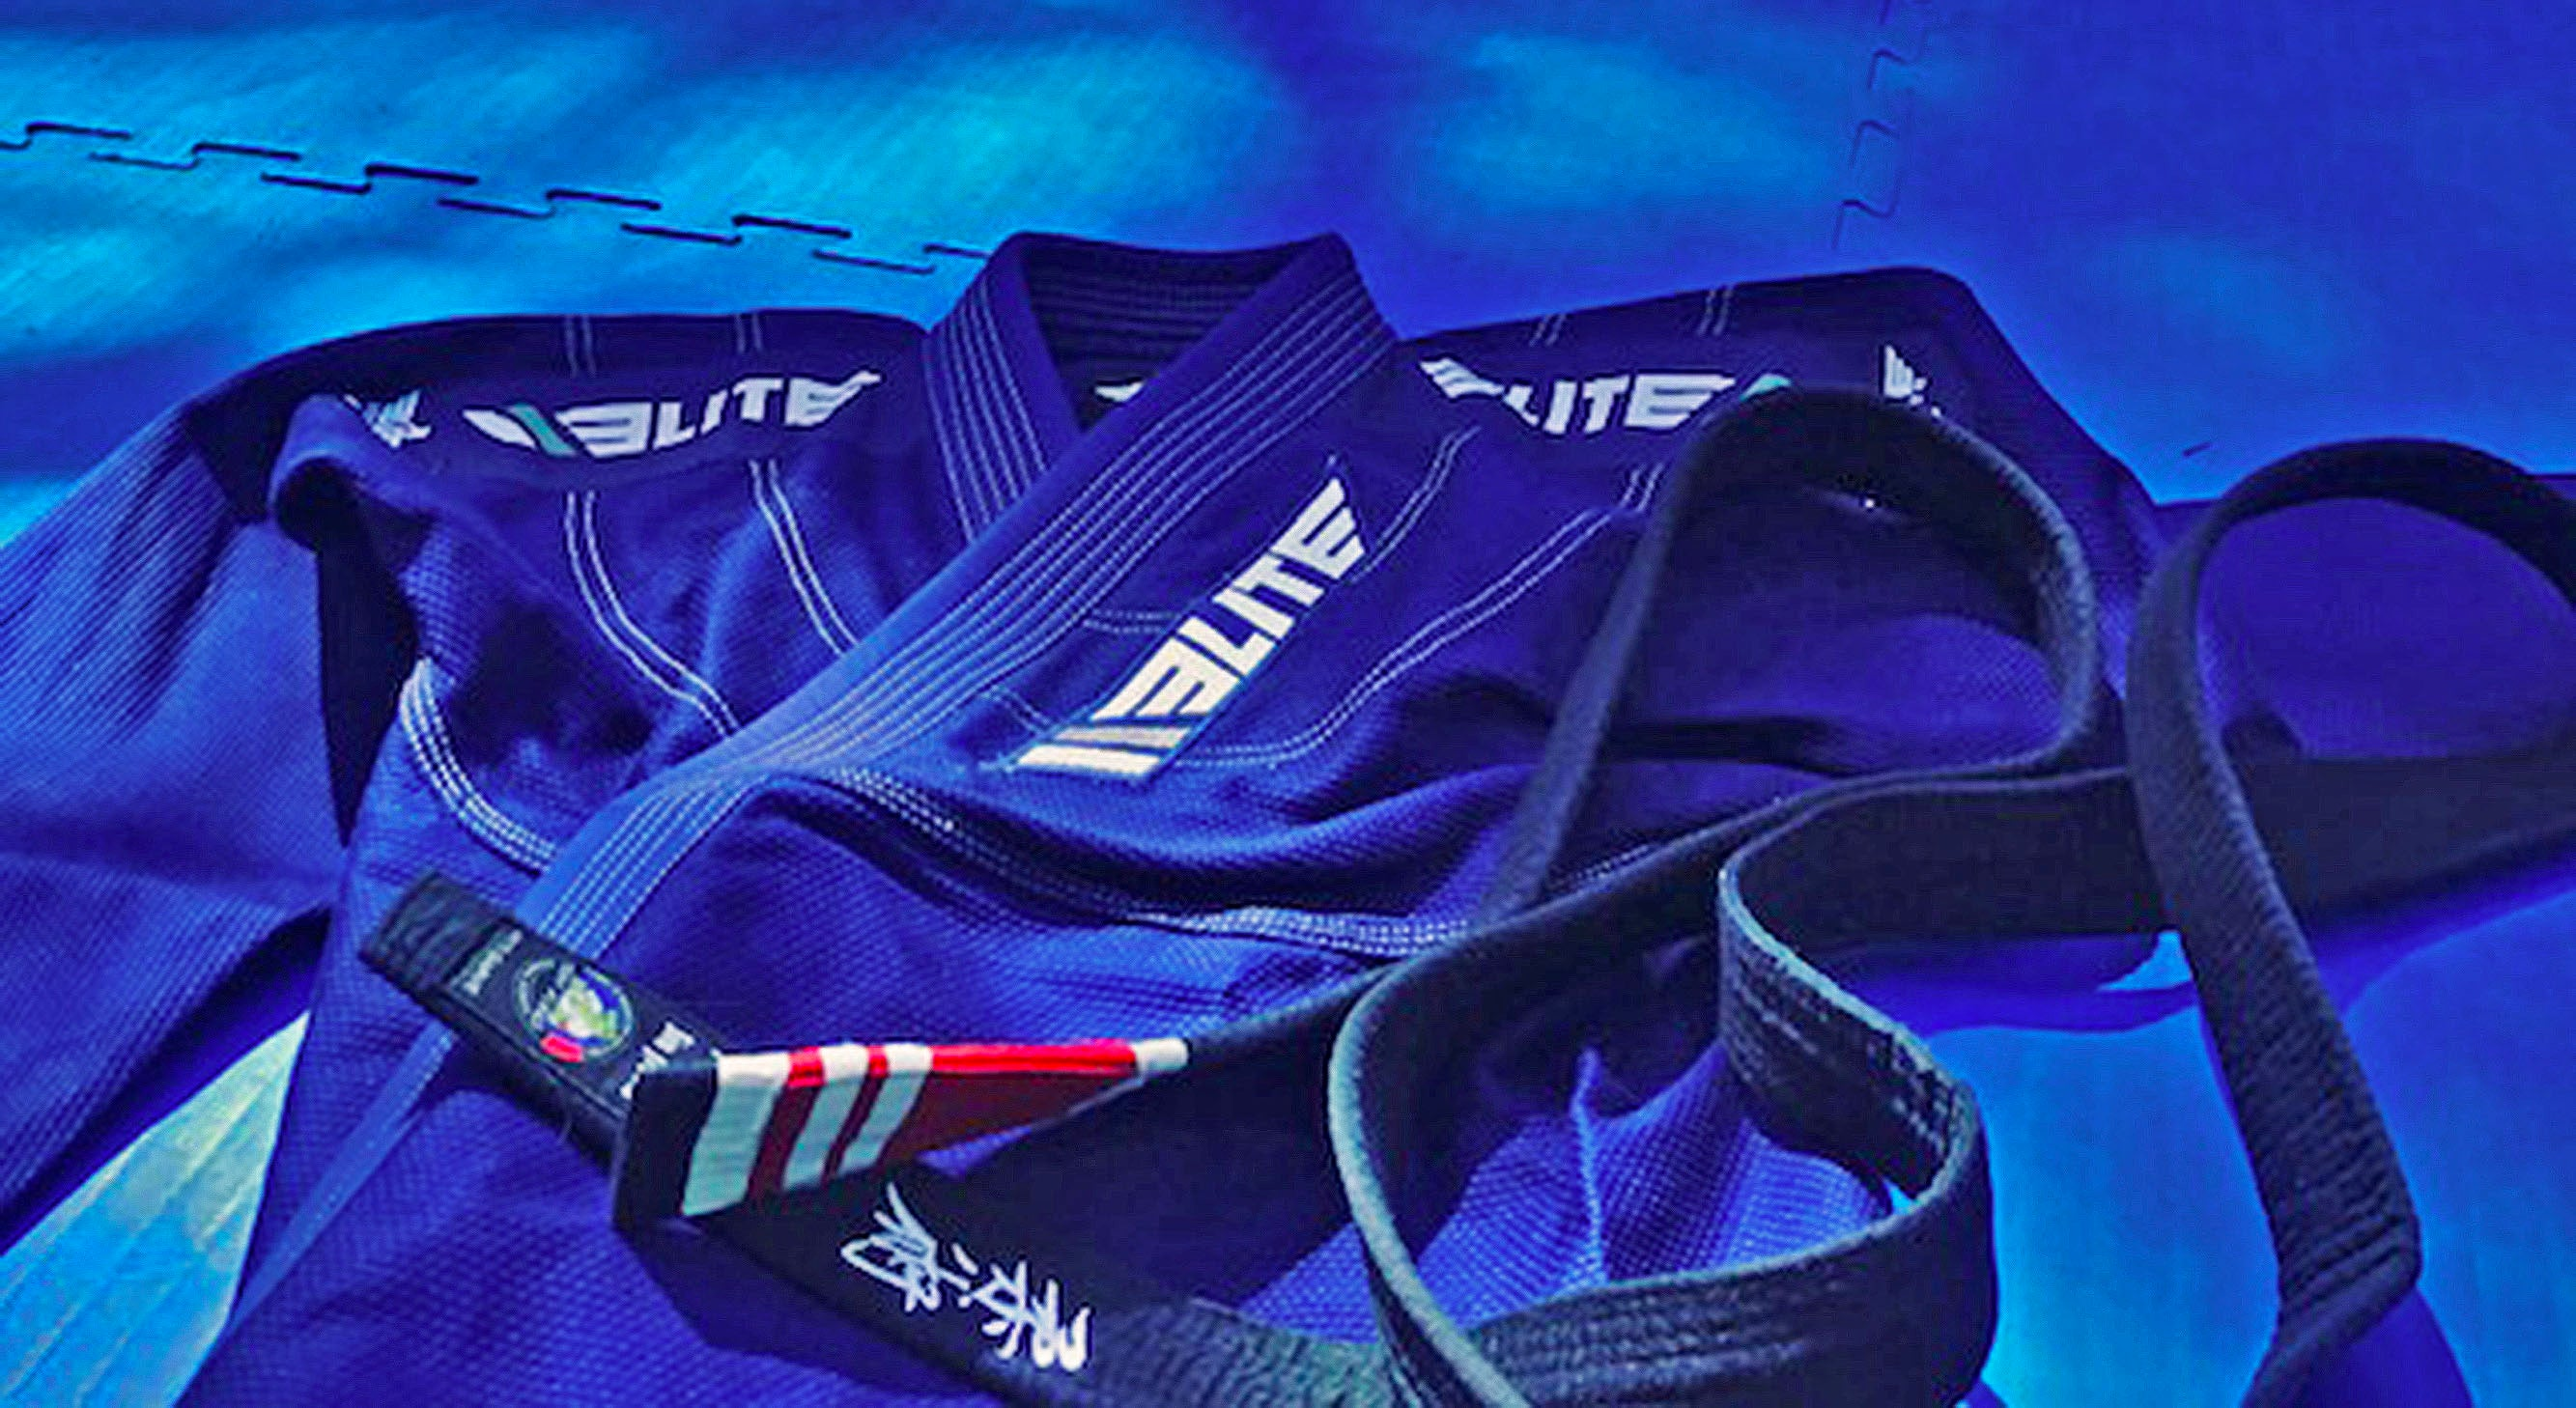 Elite Sports Team Elite Bjj Fighter Emmanuel Alves Image4